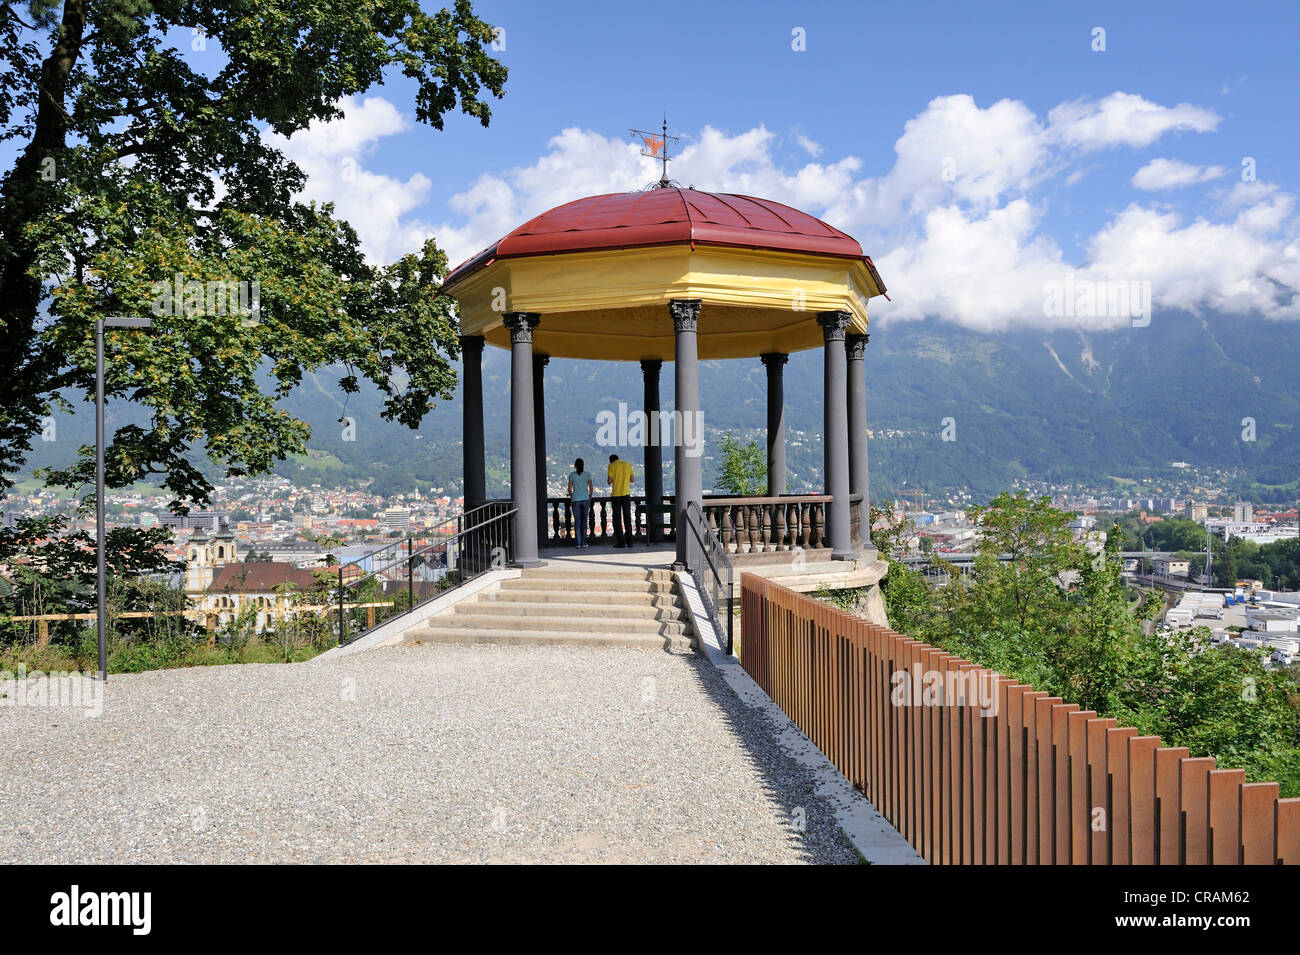 Viewpoint next to the Tiroler Kaiserjaegermuseum Bergisel museum, above the city of Innsbruck, Tyrol, Austria, Europe - Stock Image